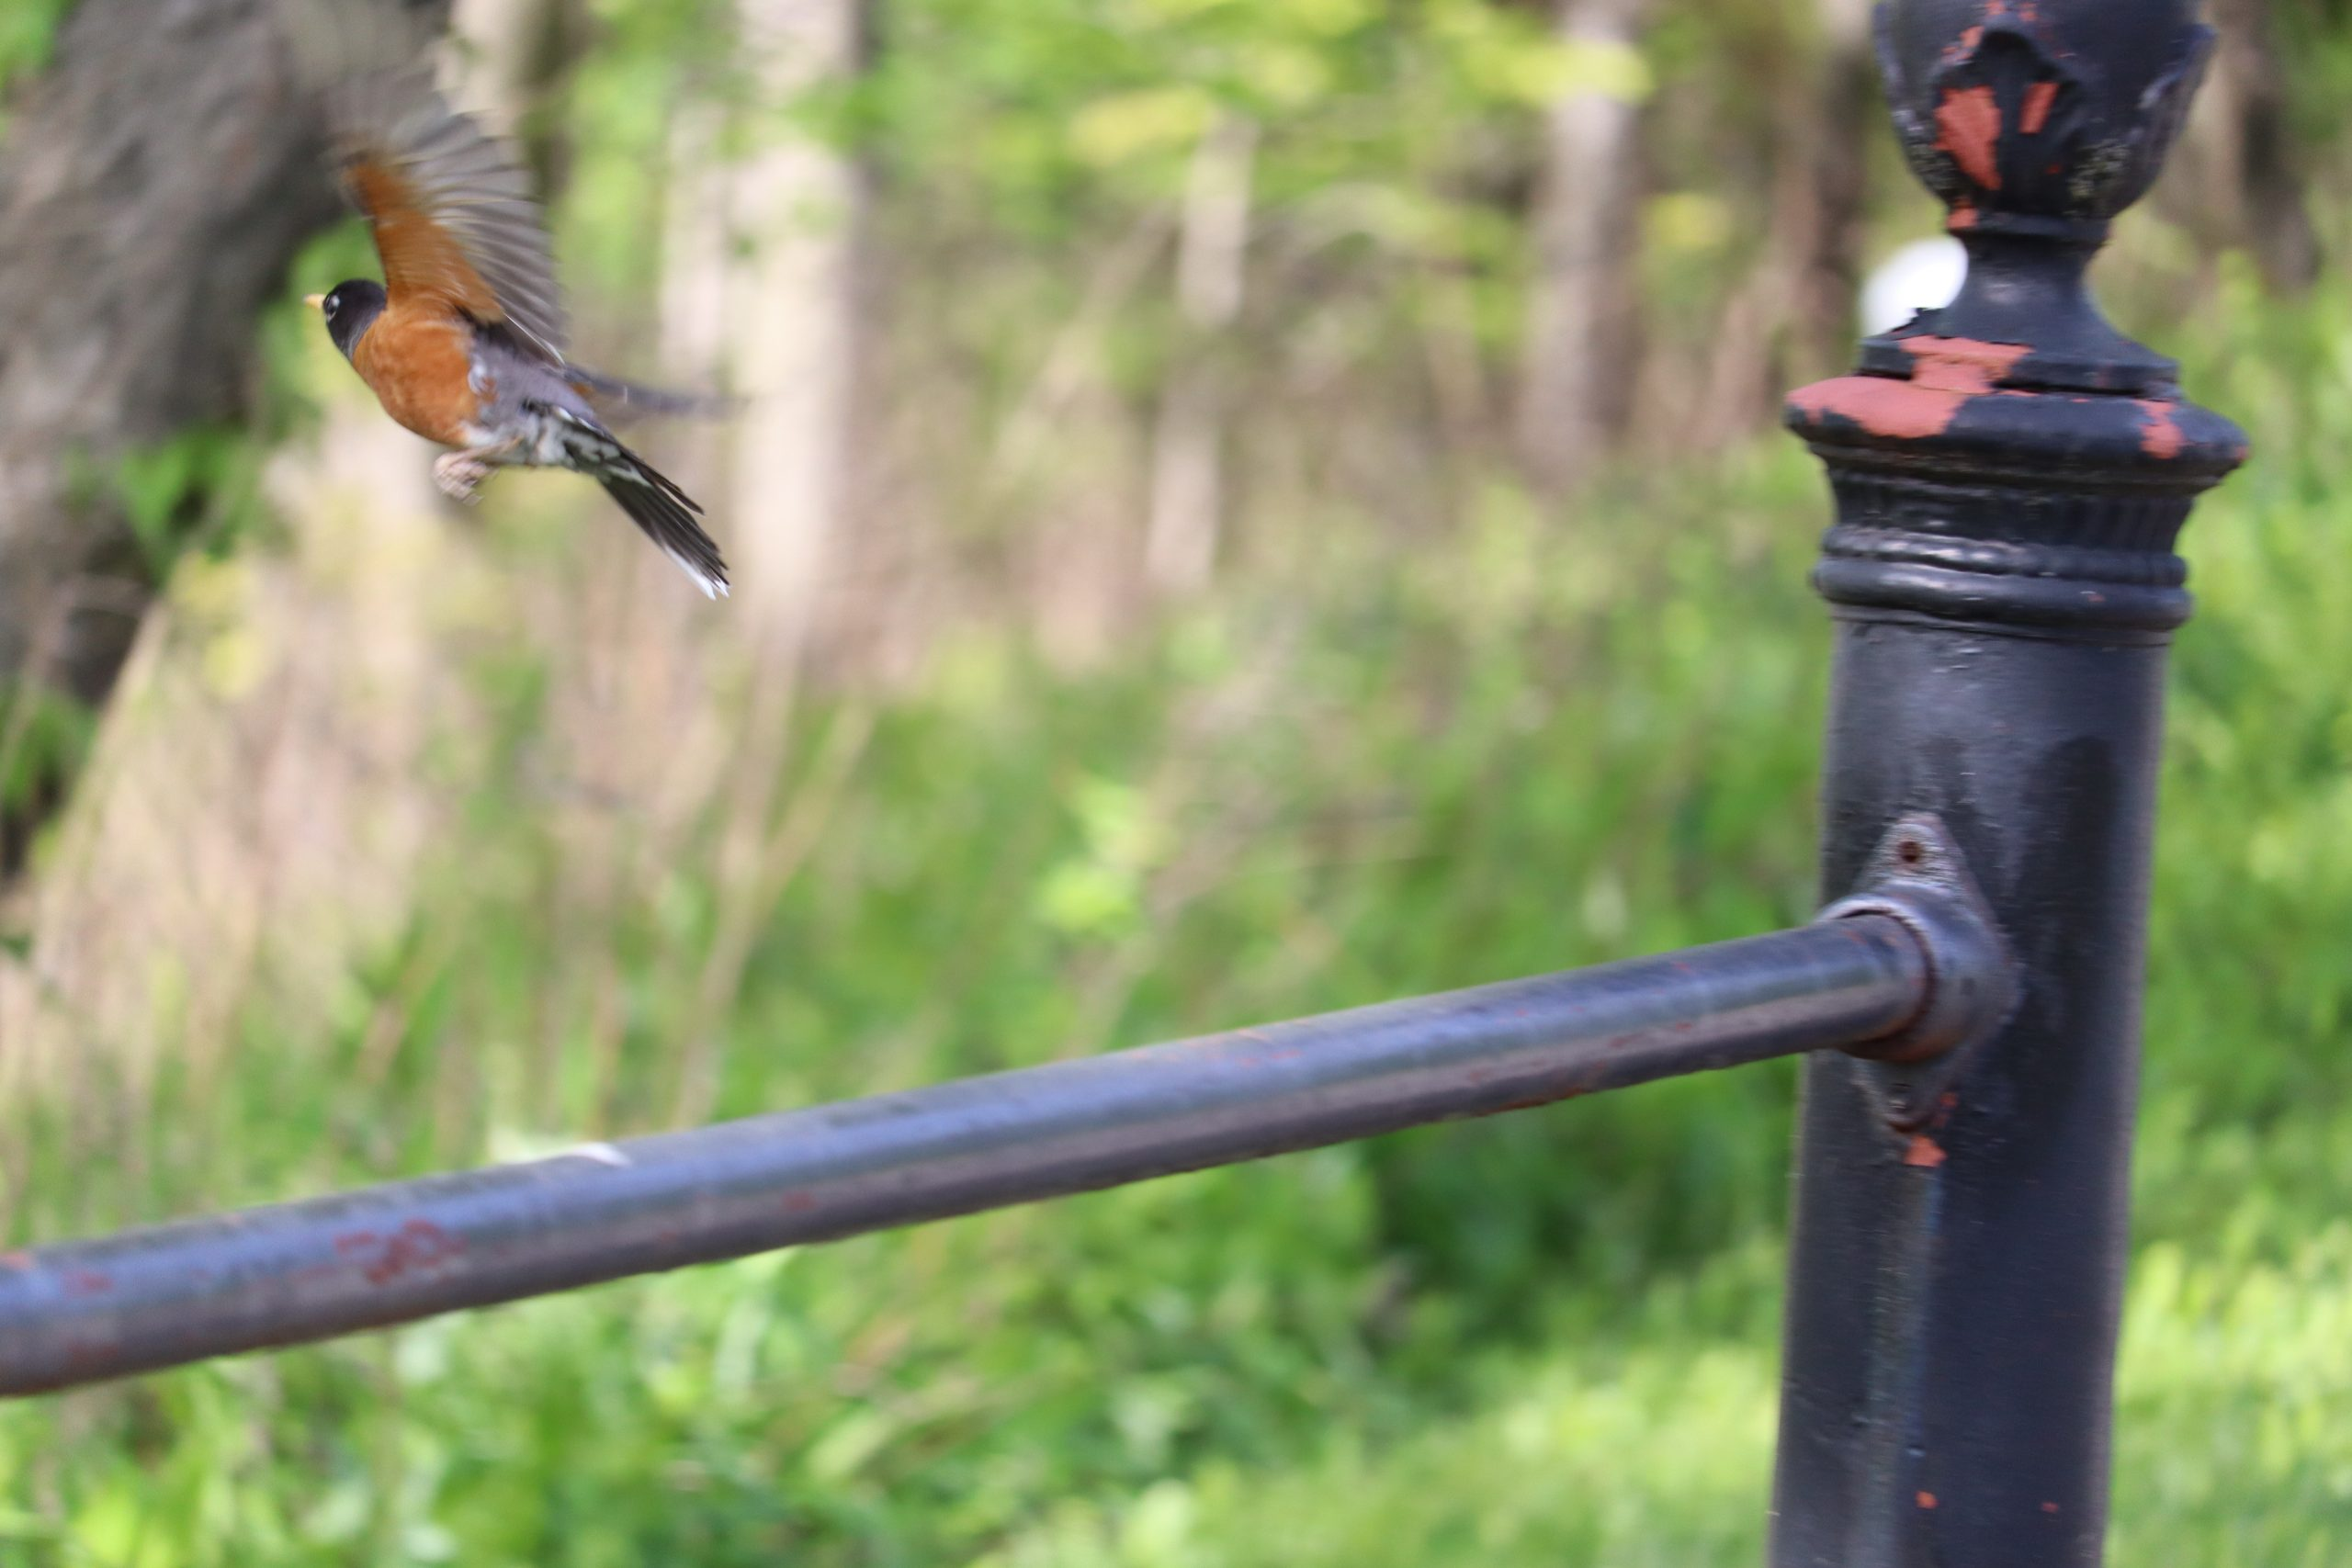 Another American Robin in flight. It had been sitting on the railing and then took off while I was taking pictures.